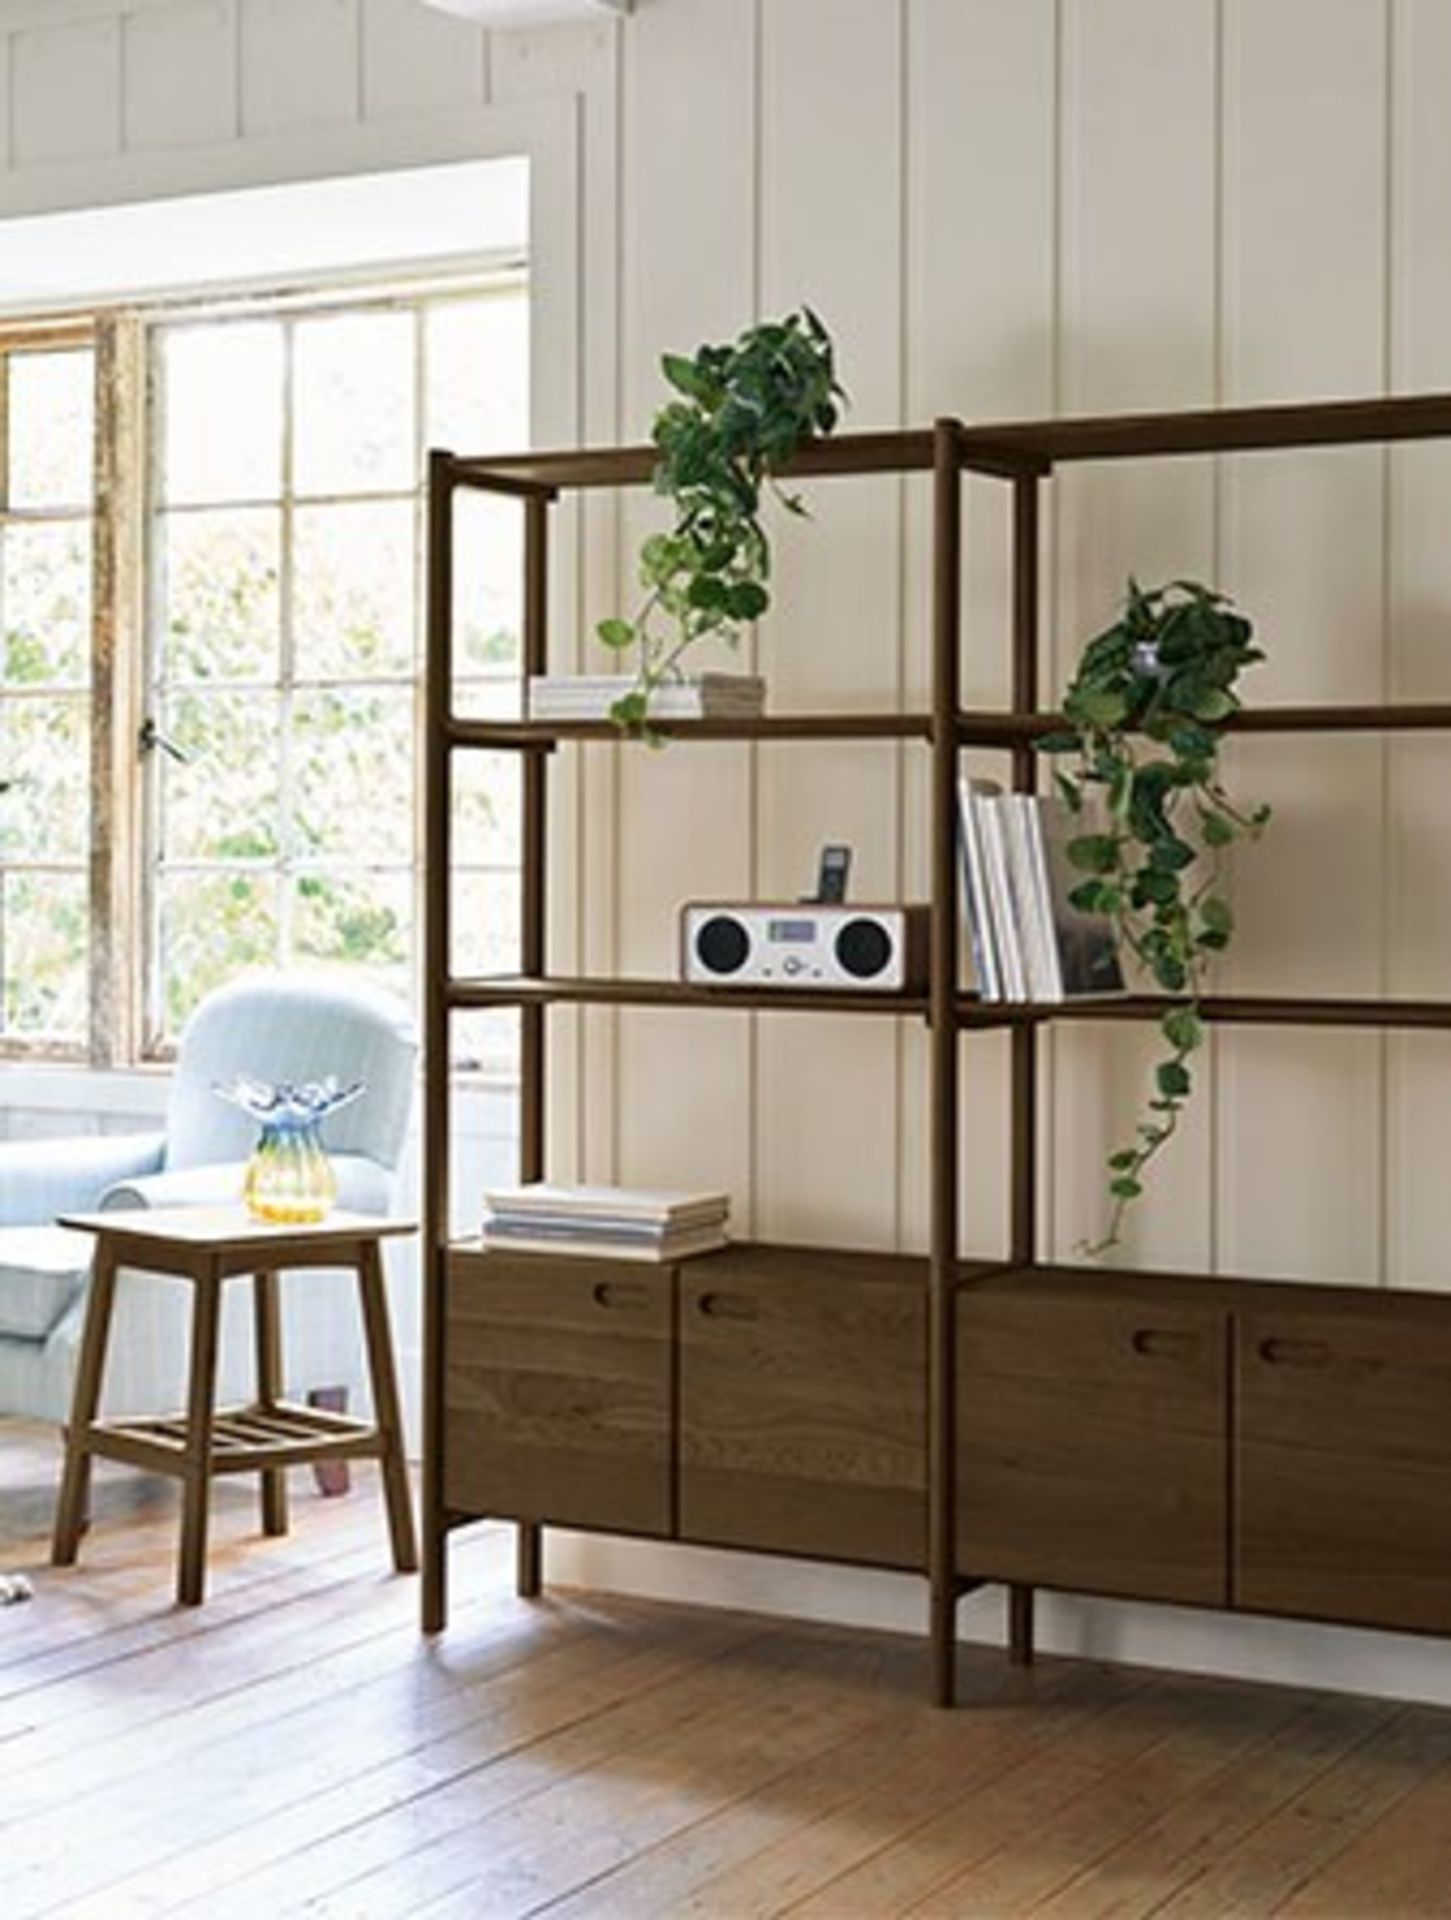 Laura Ashley Hazlemere Walnut 2 Door Single Bookcase Taking inspiration from the iconic furniture